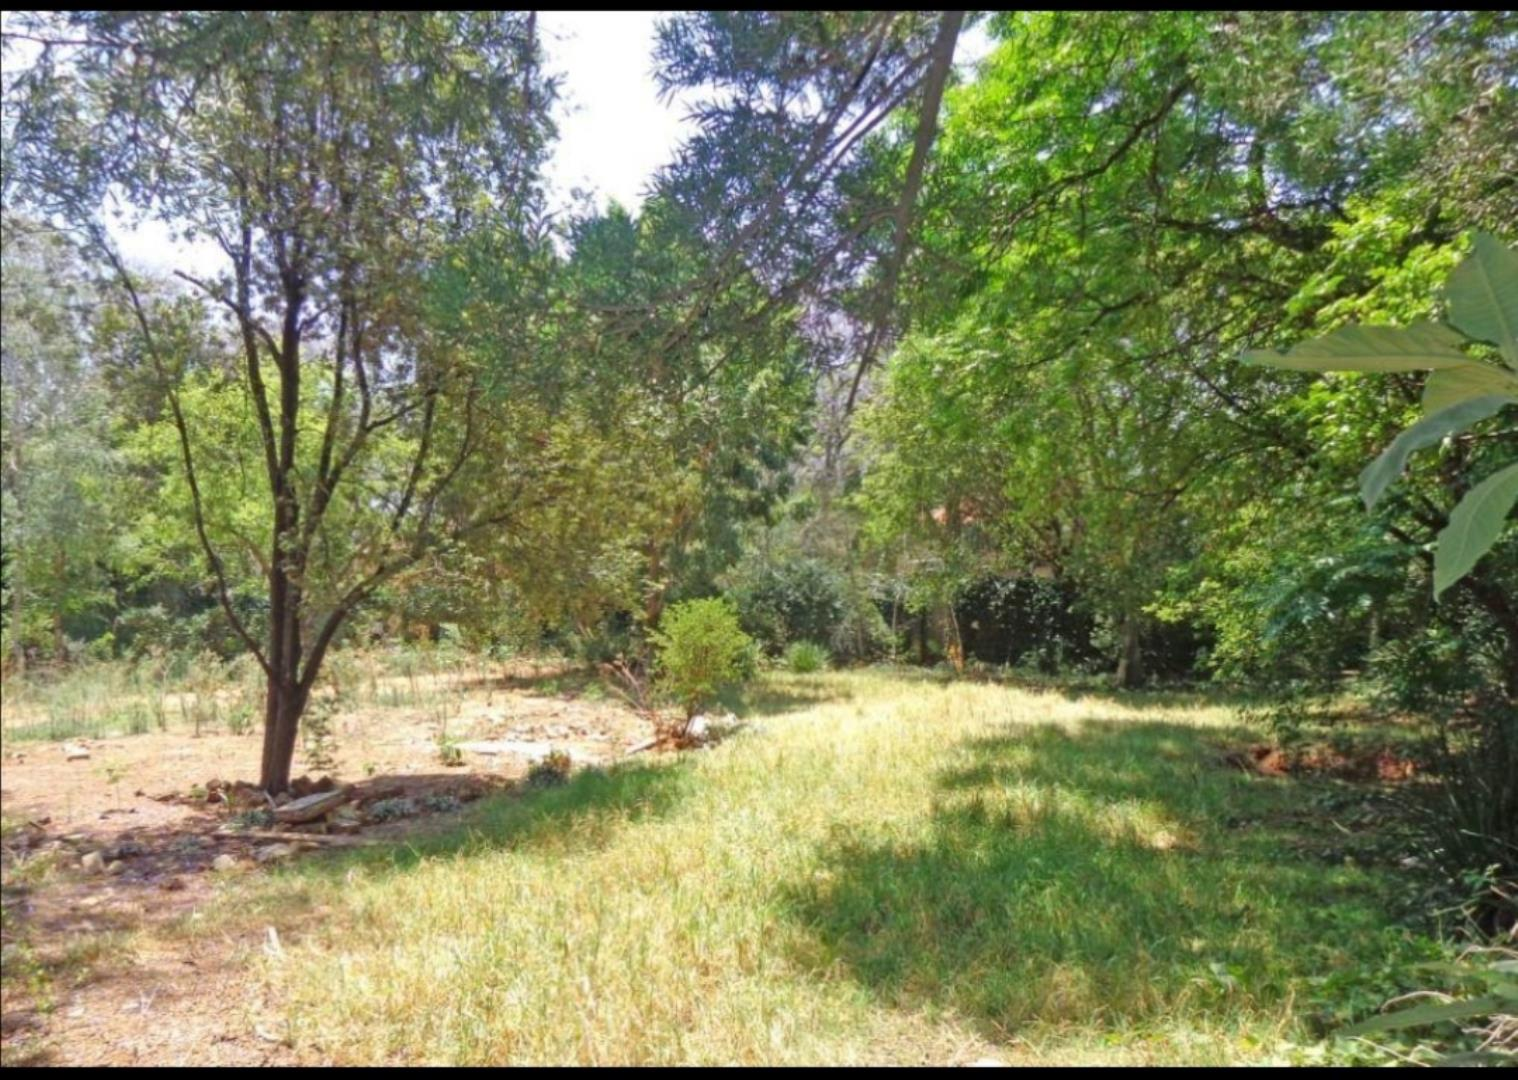 Vacant Land for Sale in Houghton Estate, Johannesburg - Gauteng